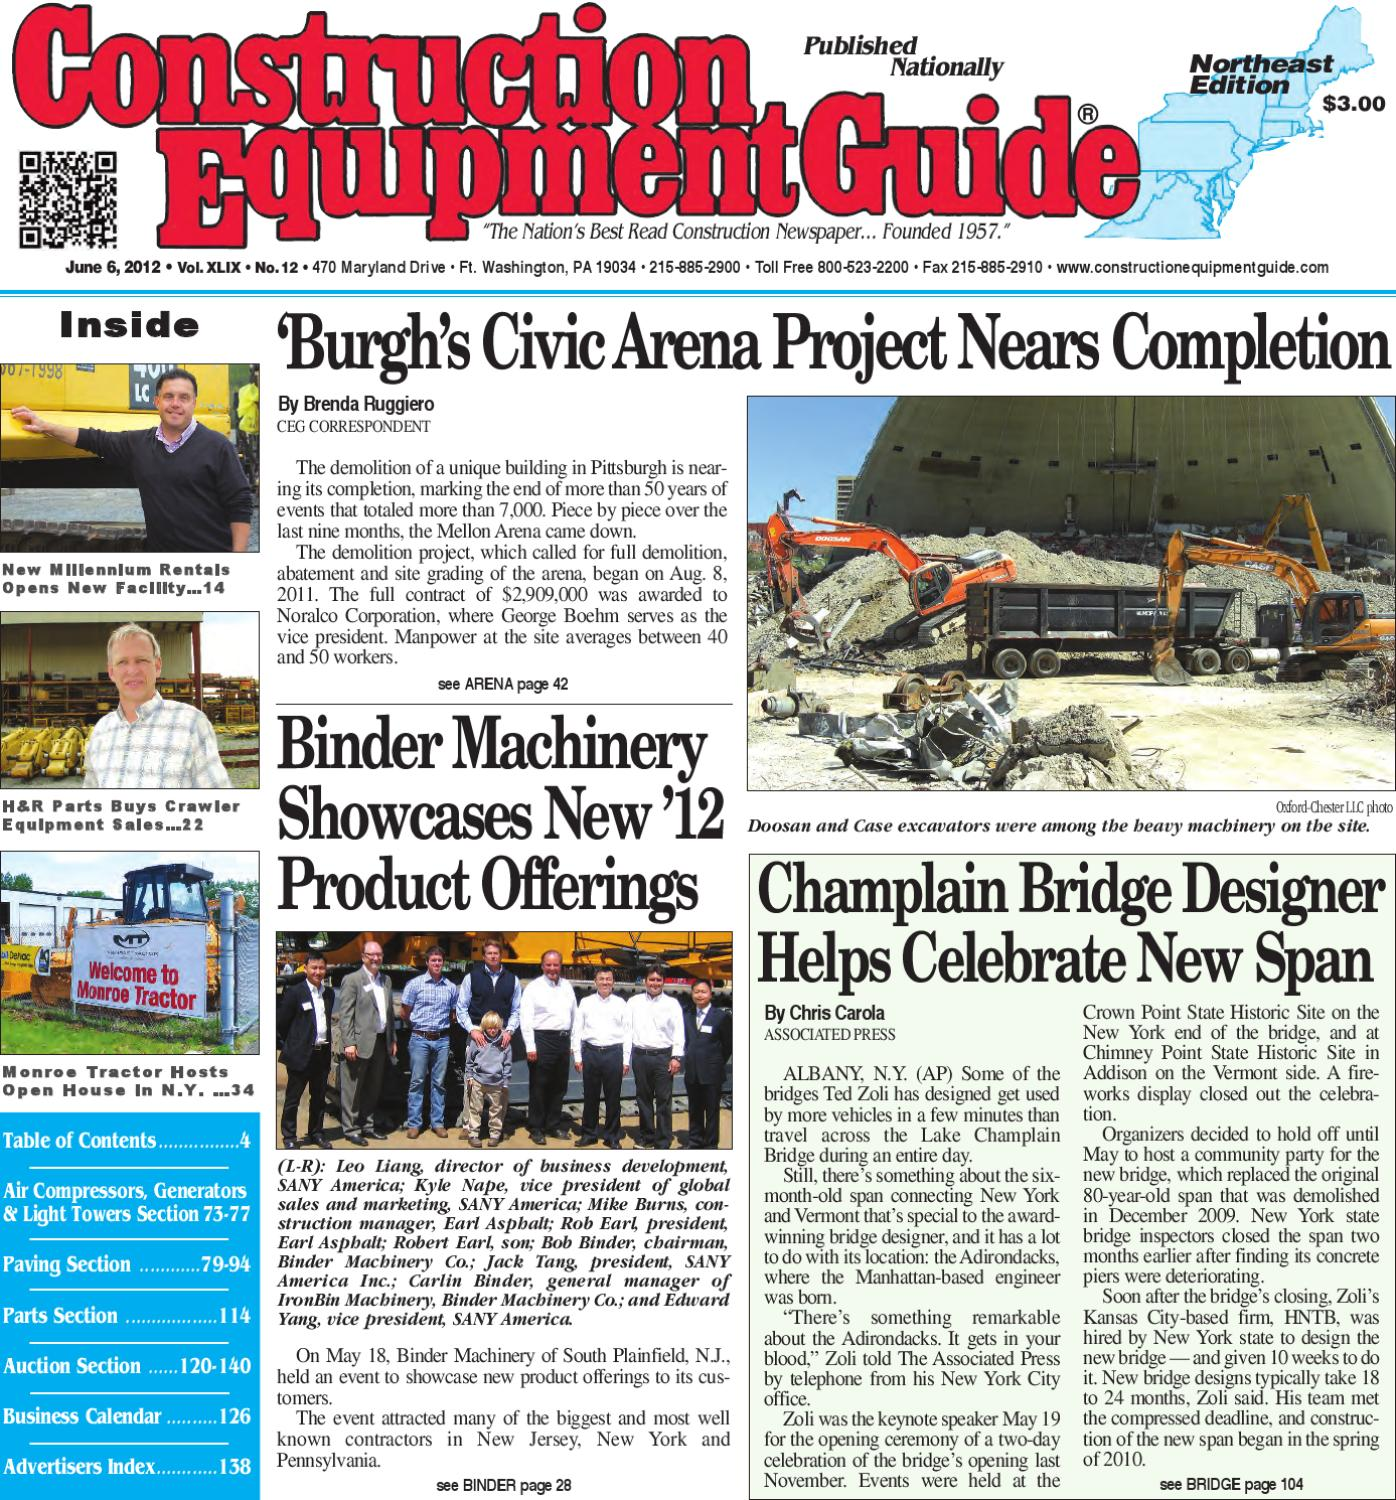 Northeast #12, 2012 by Construction Equipment Guide - issuu